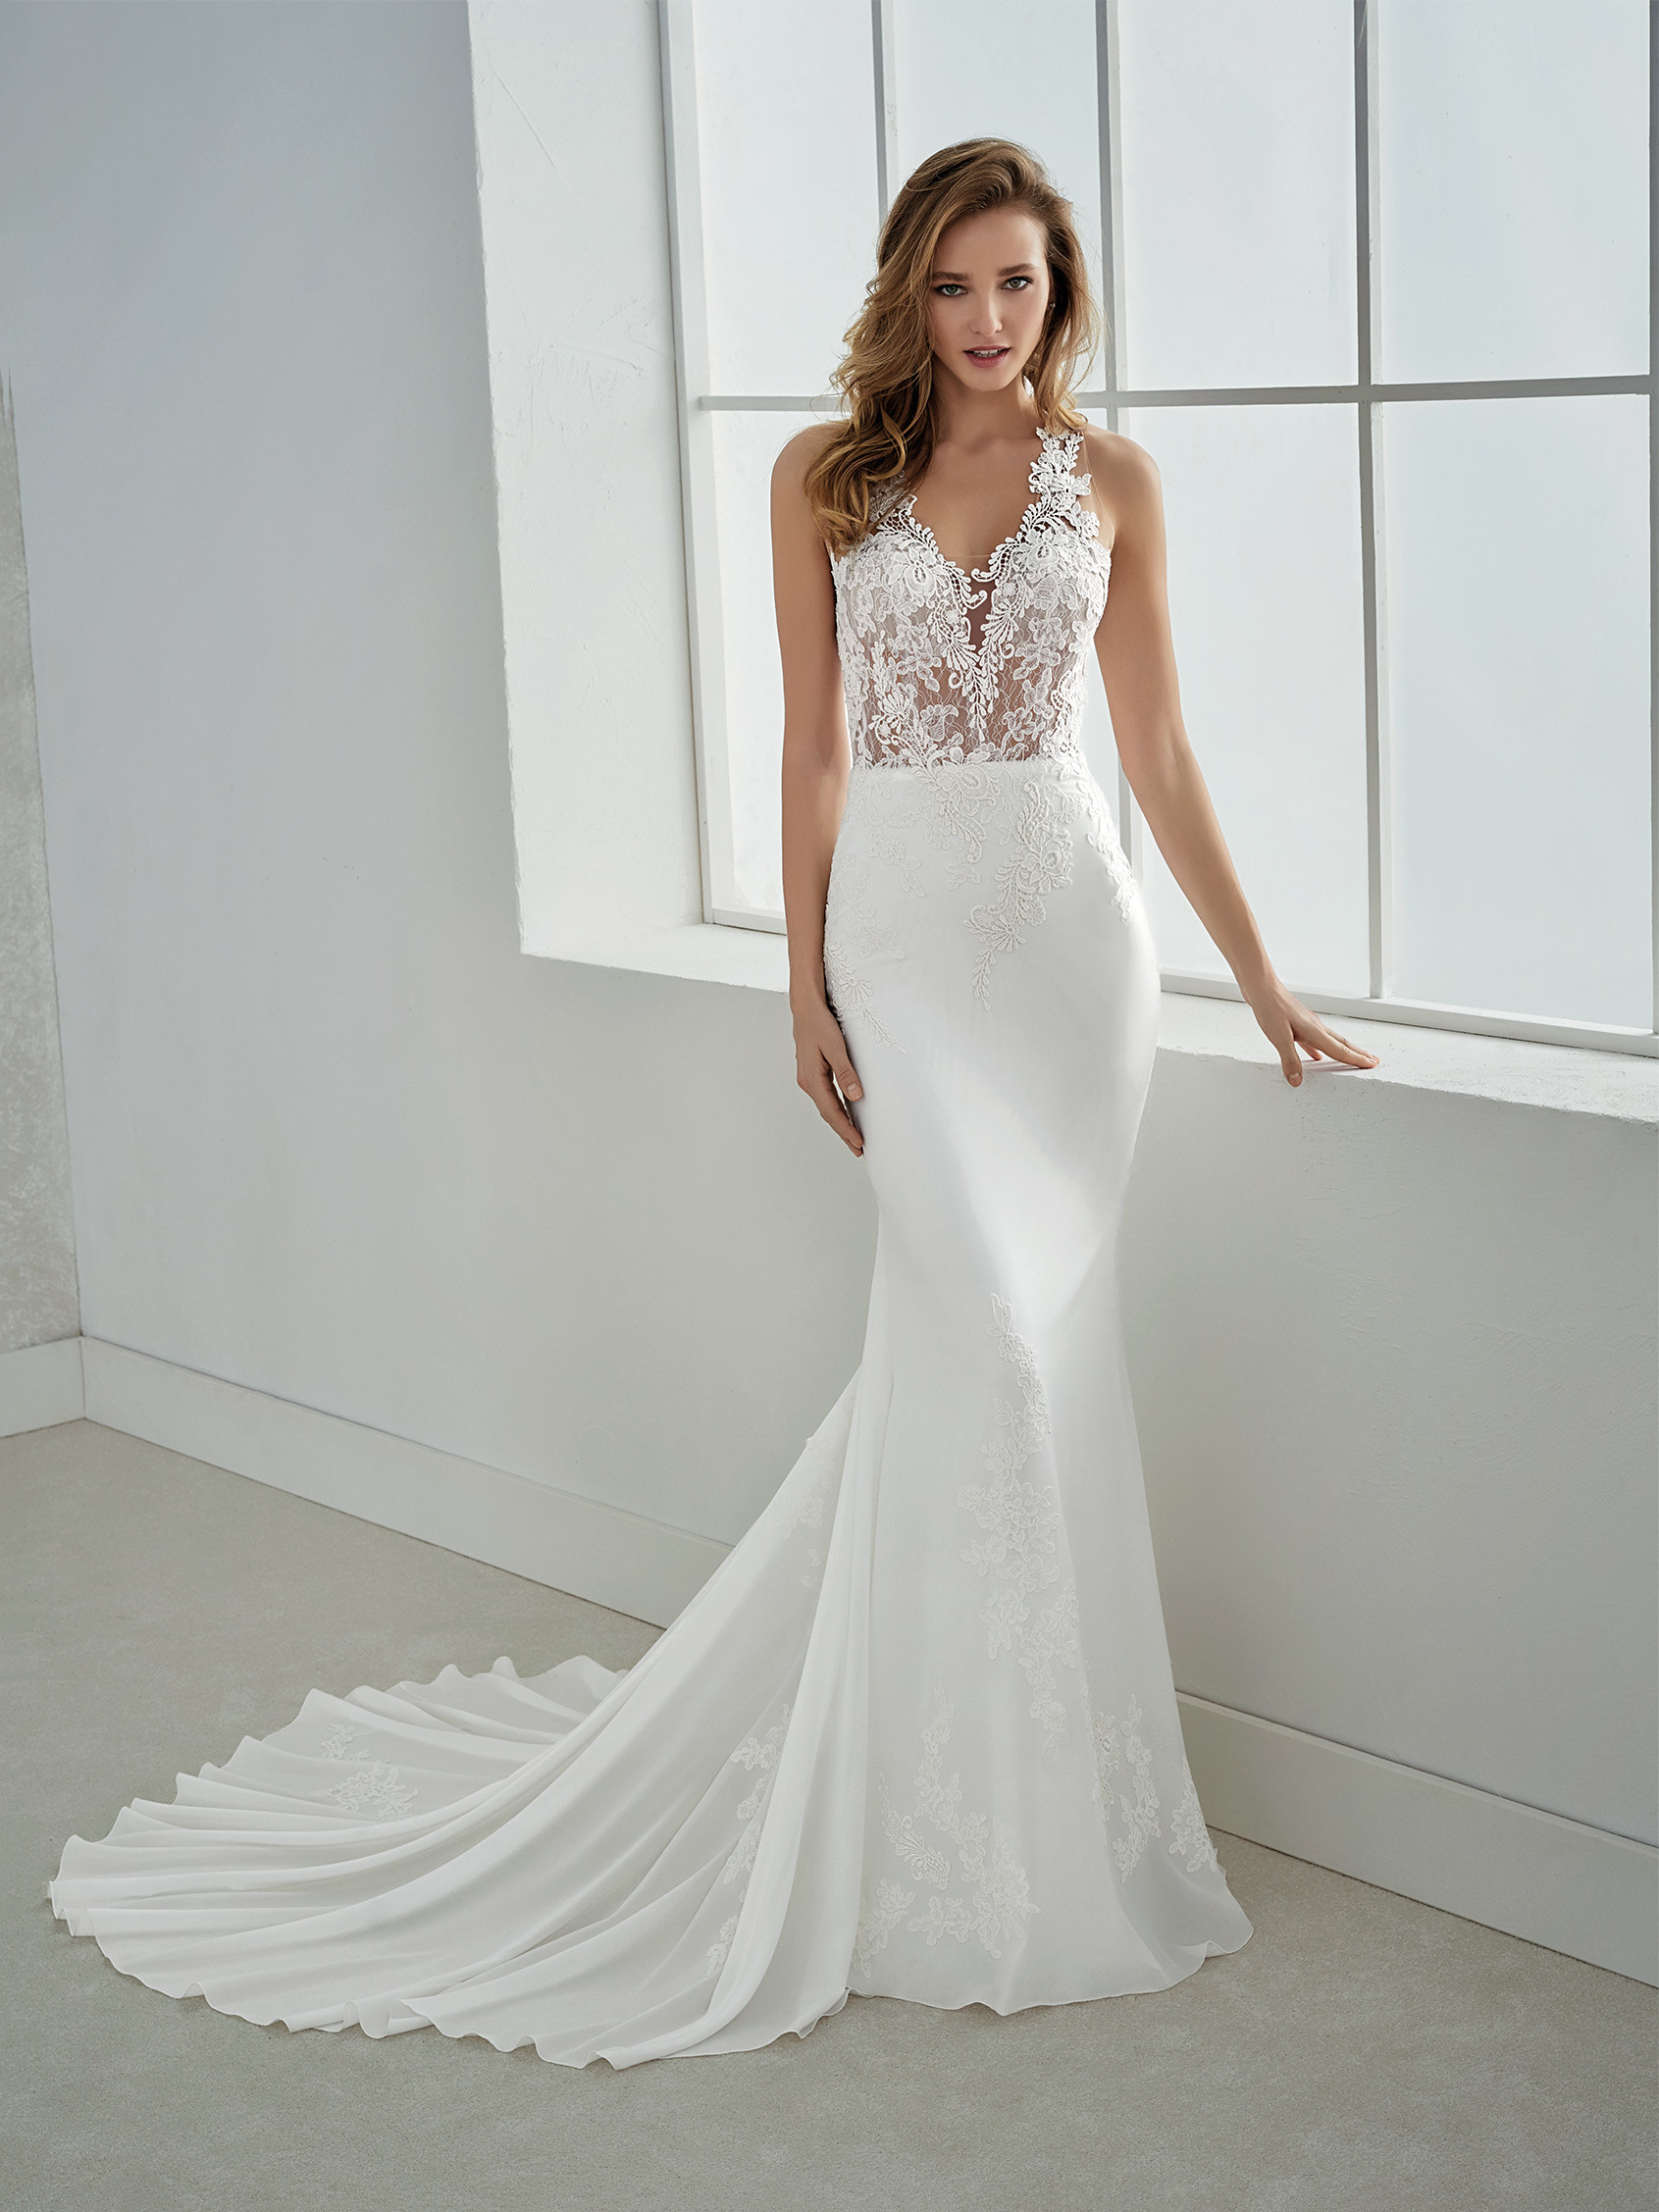 Brautkleid-filipinas_b